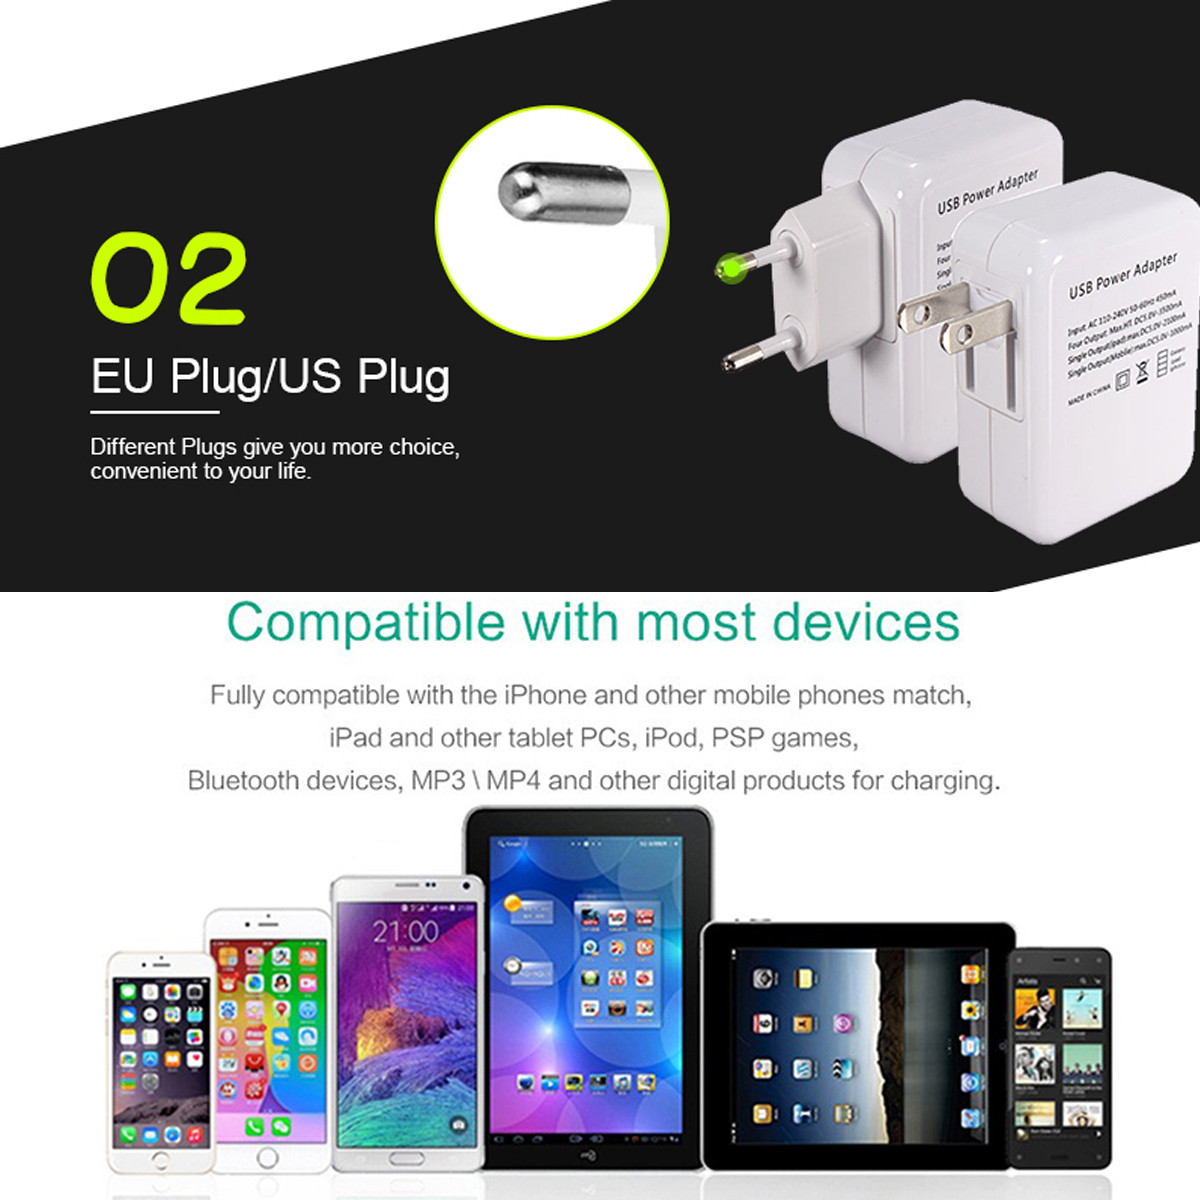 Universal Travel USB Wall Charger Adapter 4 Port USB Hub AC Power Supply US/EU Plug